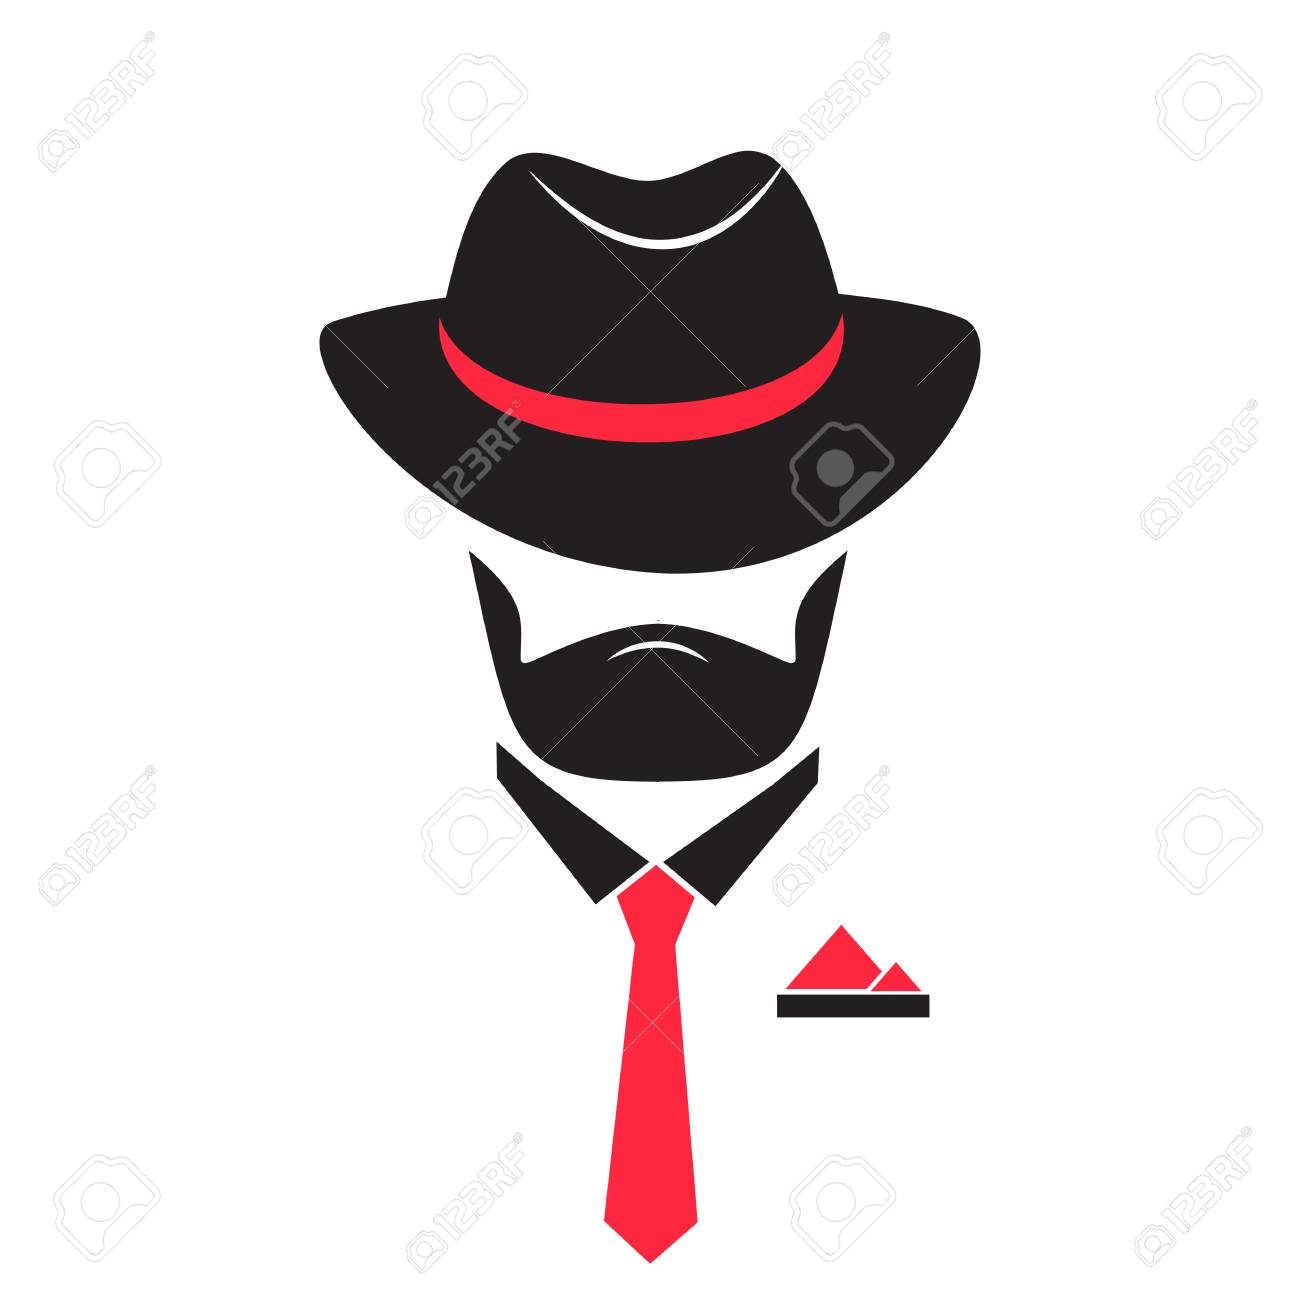 Unknown Man In A Hat And Tie With A Pocket Square Gentleman Royalty Free Cliparts Vectors And Stock Illustration Image 81564200